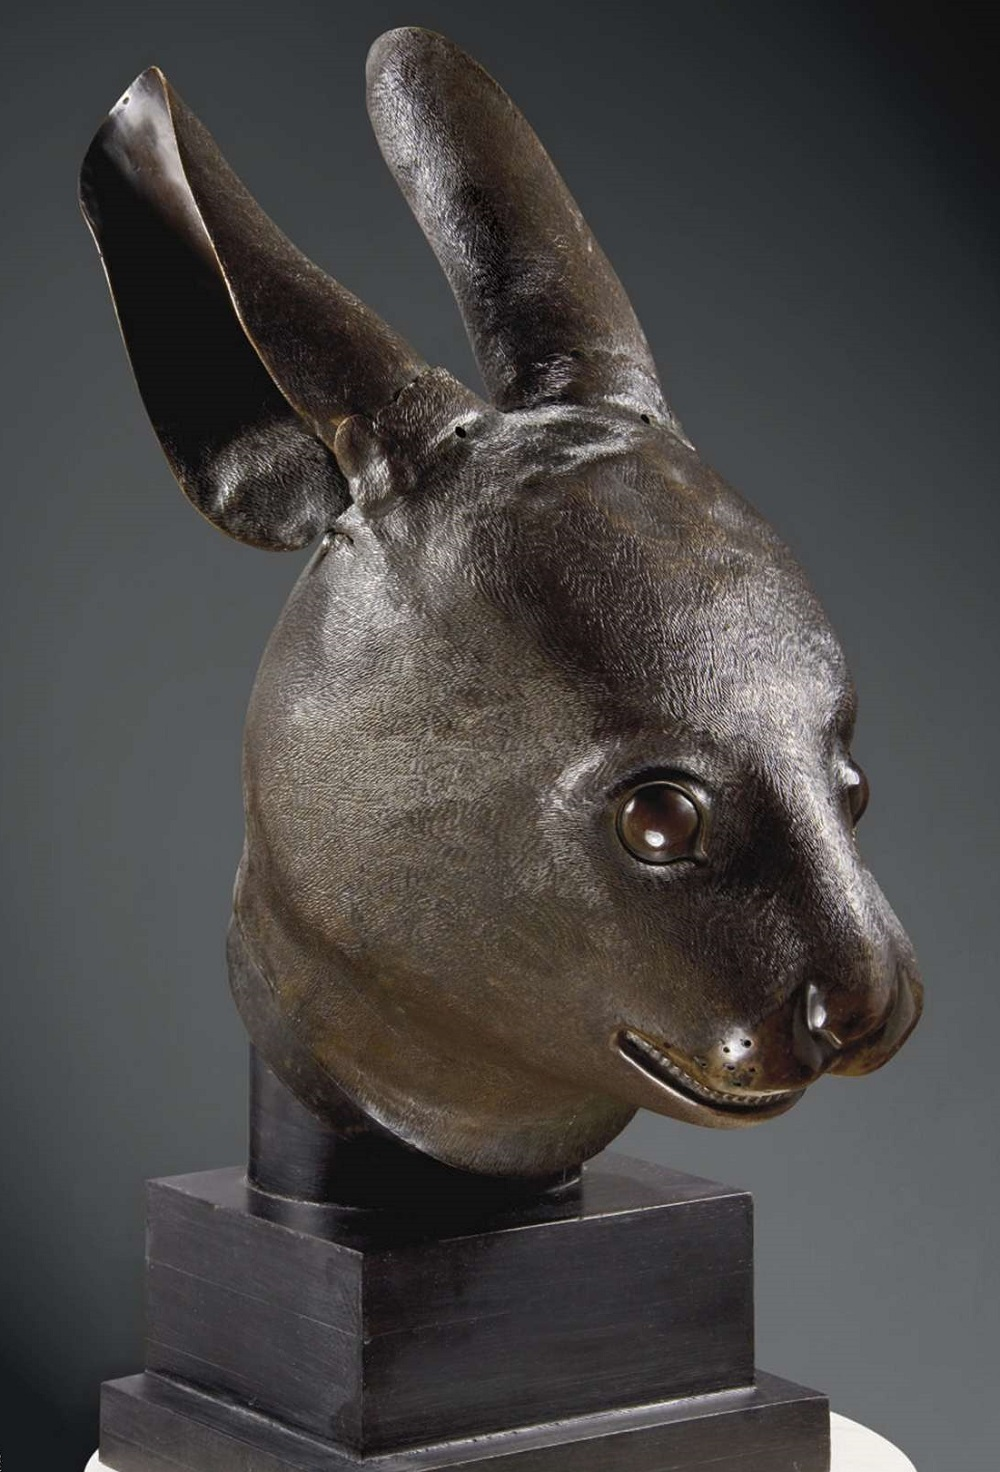 The rabbit bronze, returned by Pinault